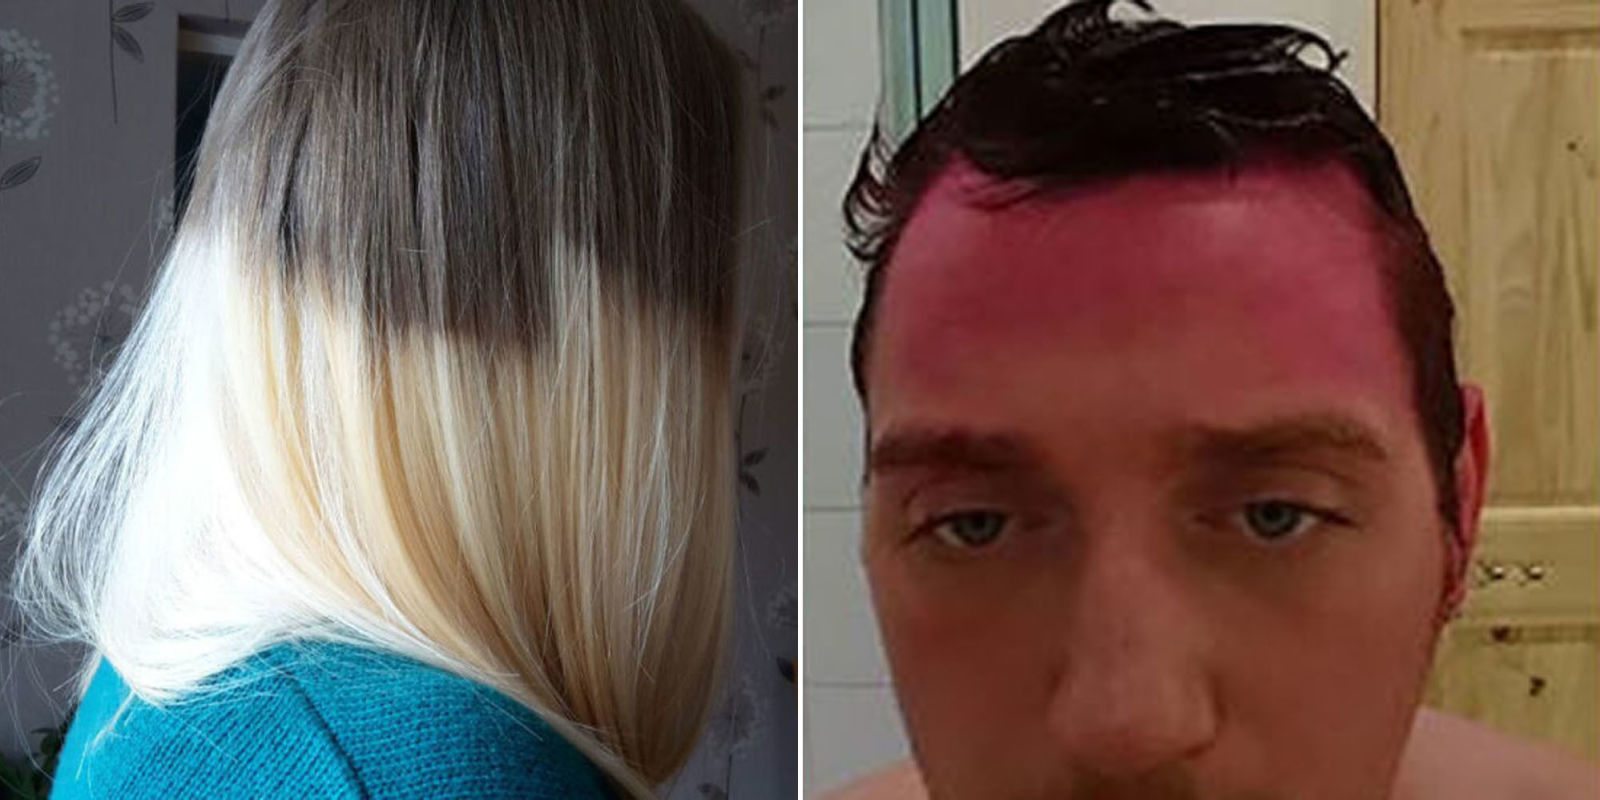 8 Hair Dye Fails Funny Botched Hair Dye Jobs